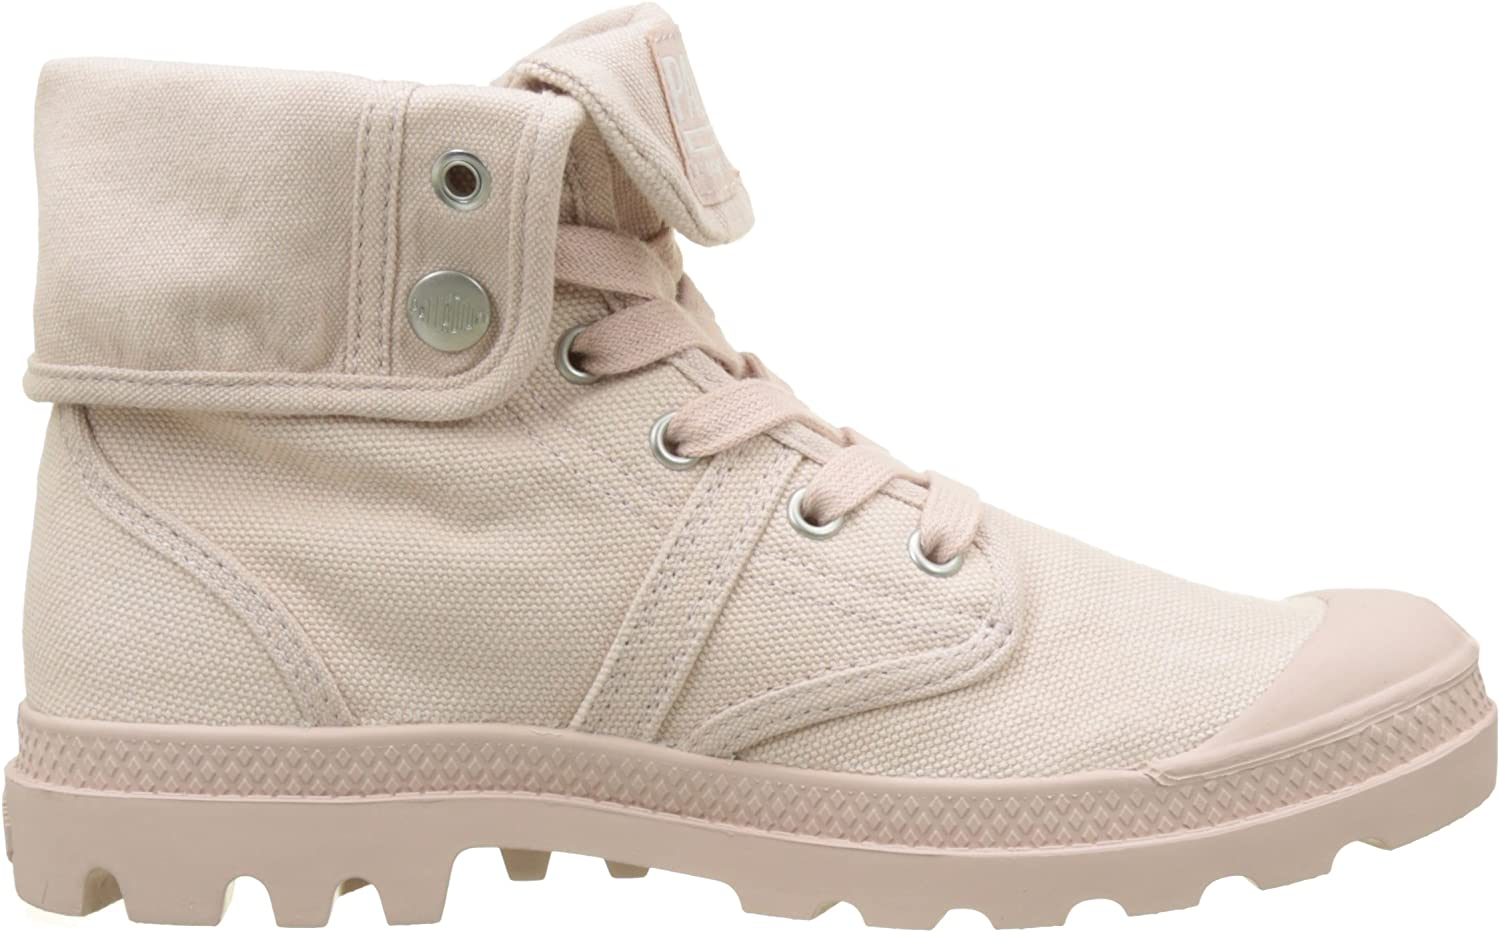 Palladium Pallabrouse Baggy, Baskets Hautes Femme Rose Peach Whip K74